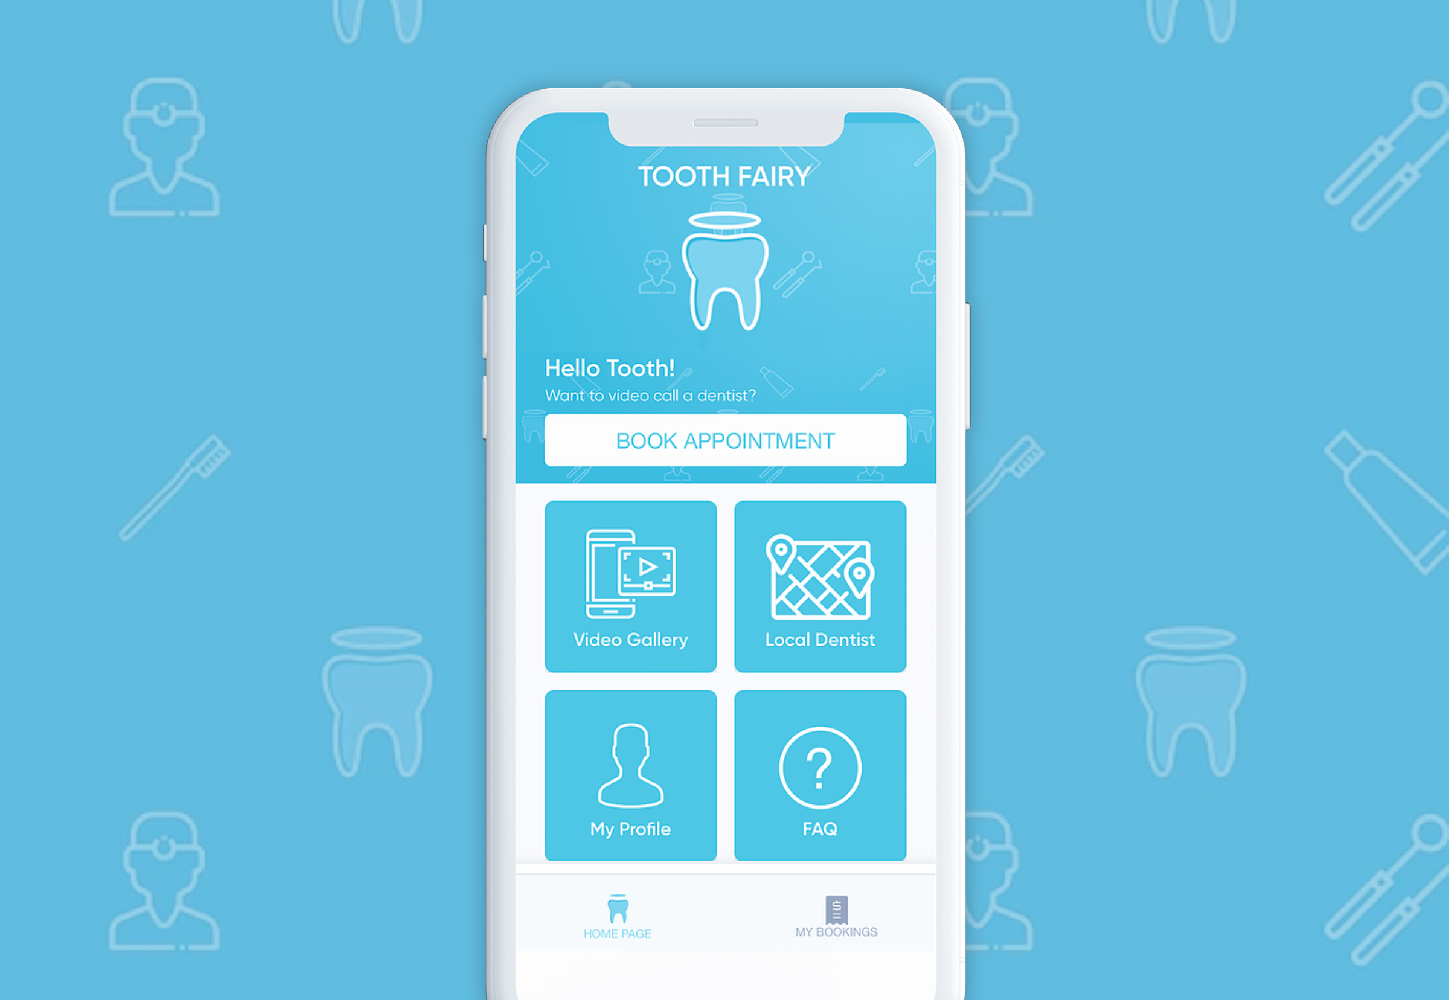 Tooth fairy page - Tooth Fairy